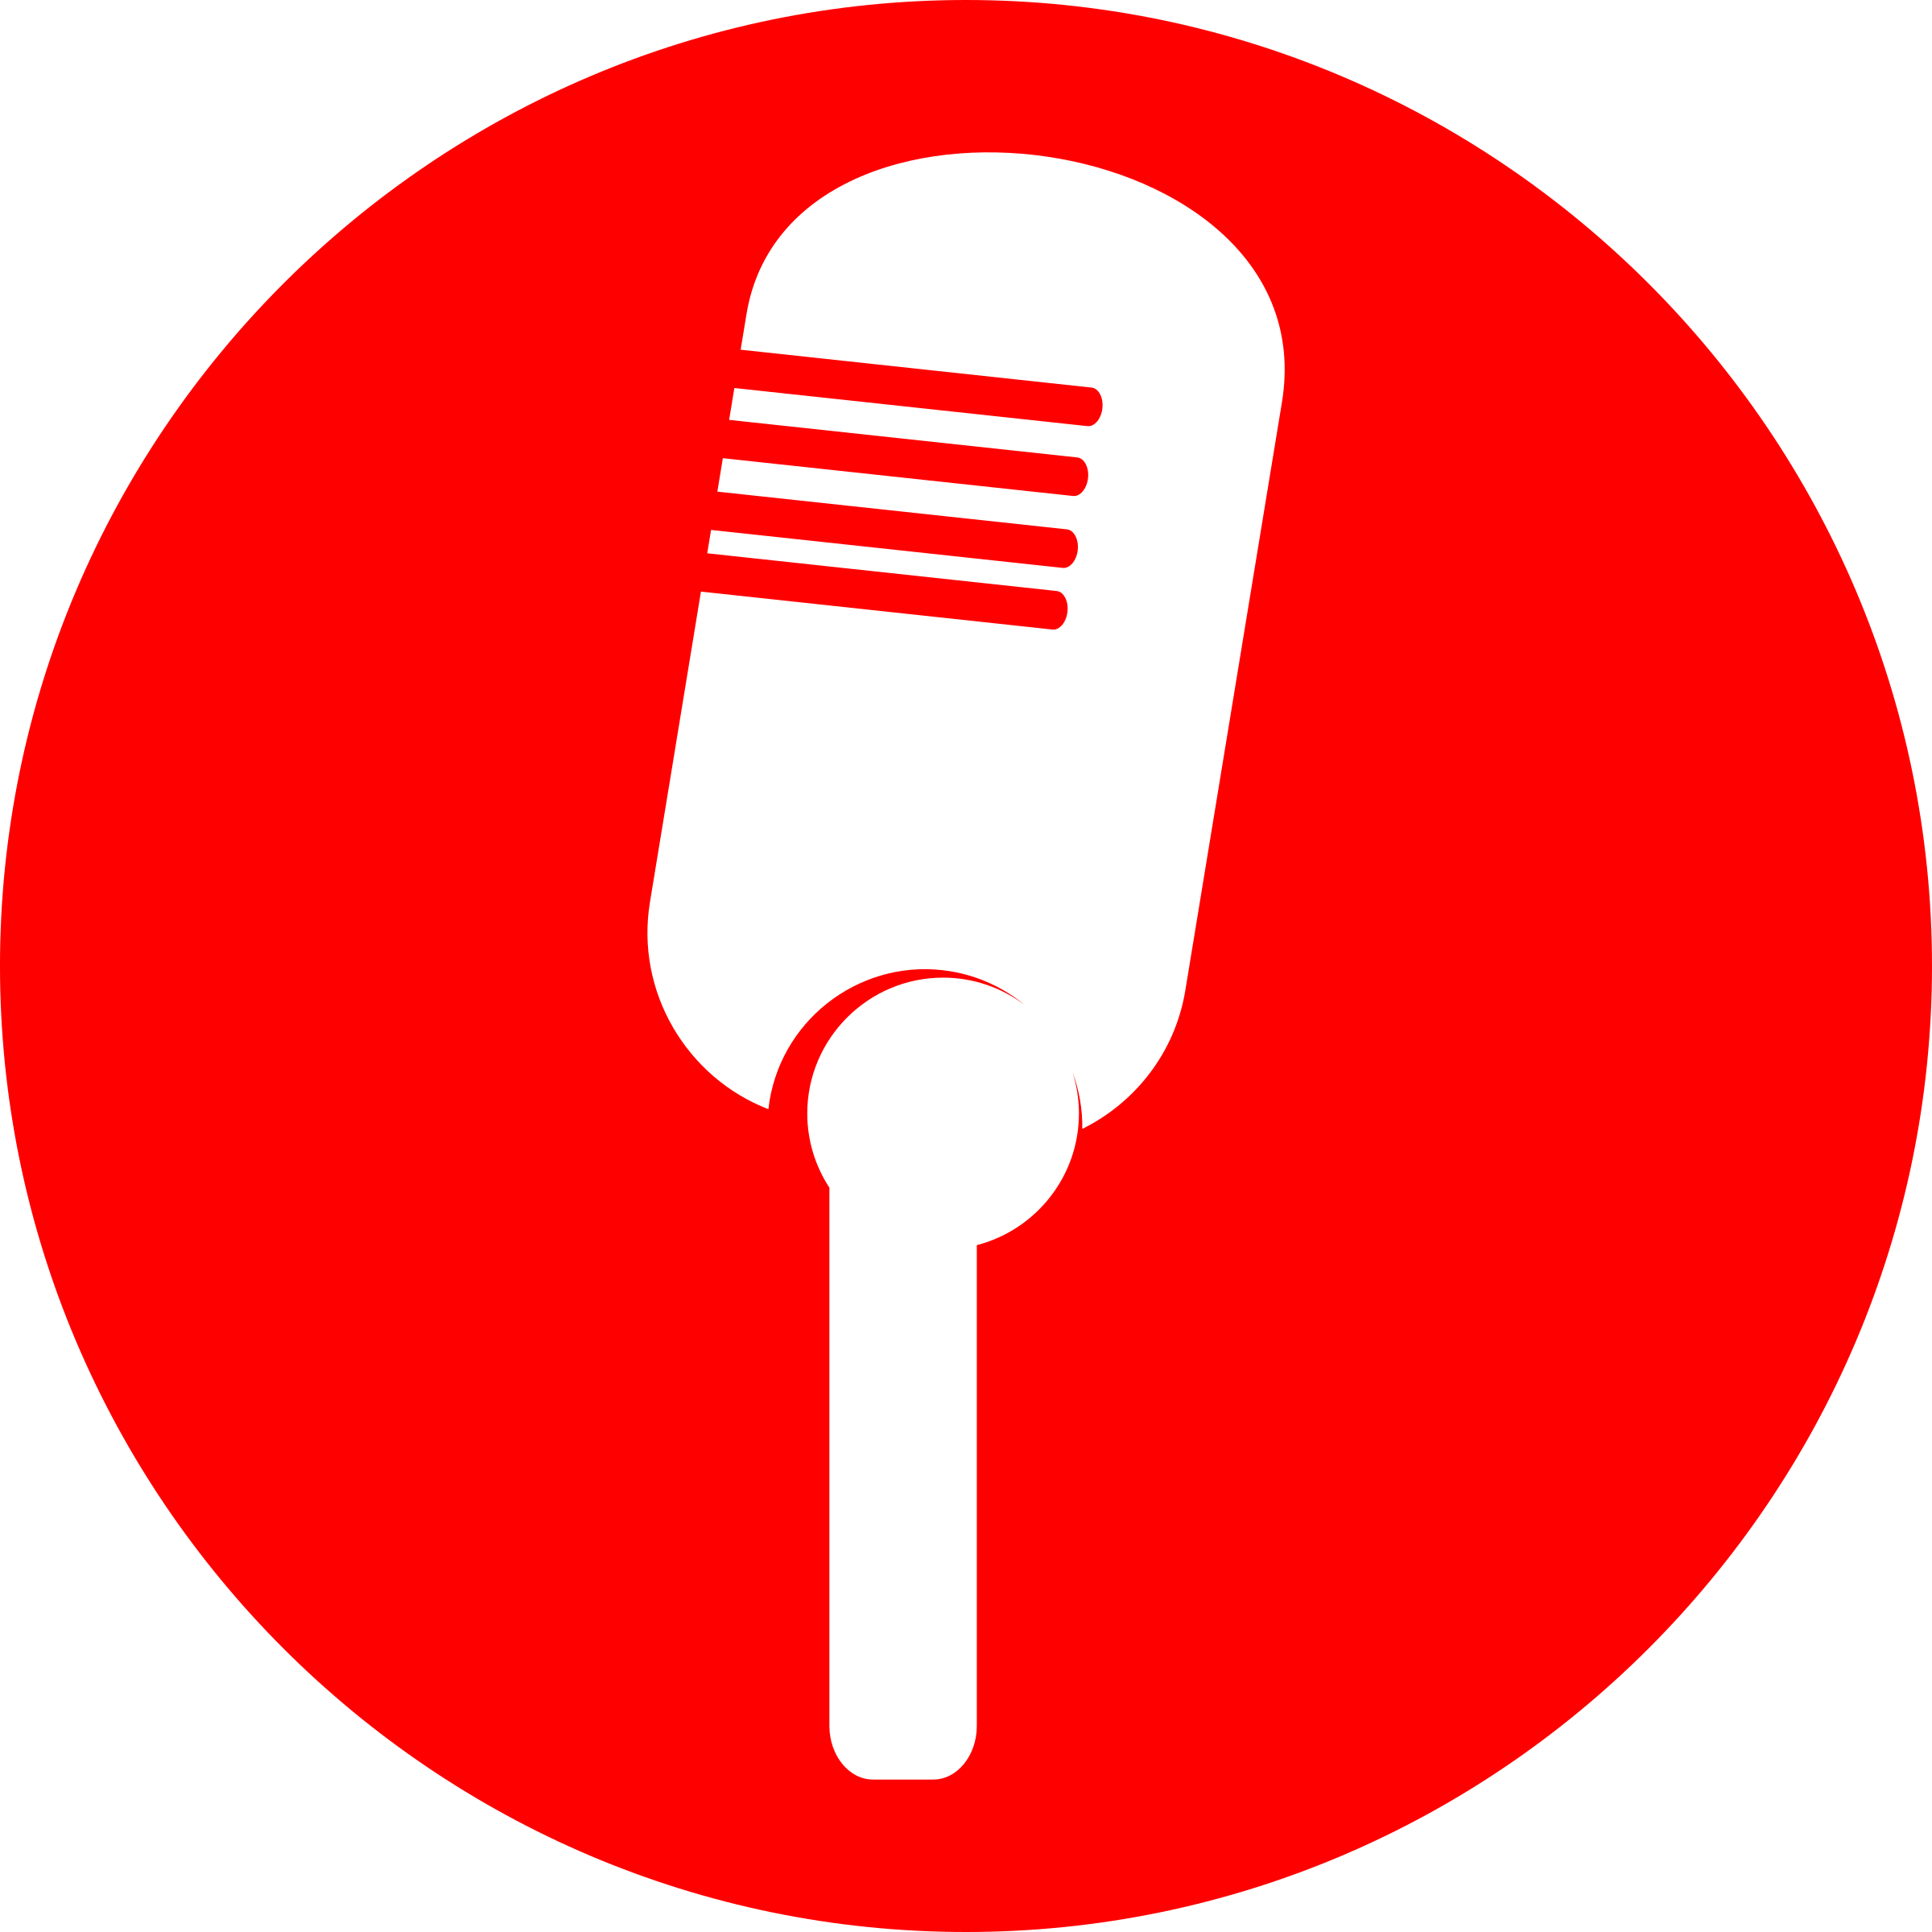 icon microphone by JPortugall